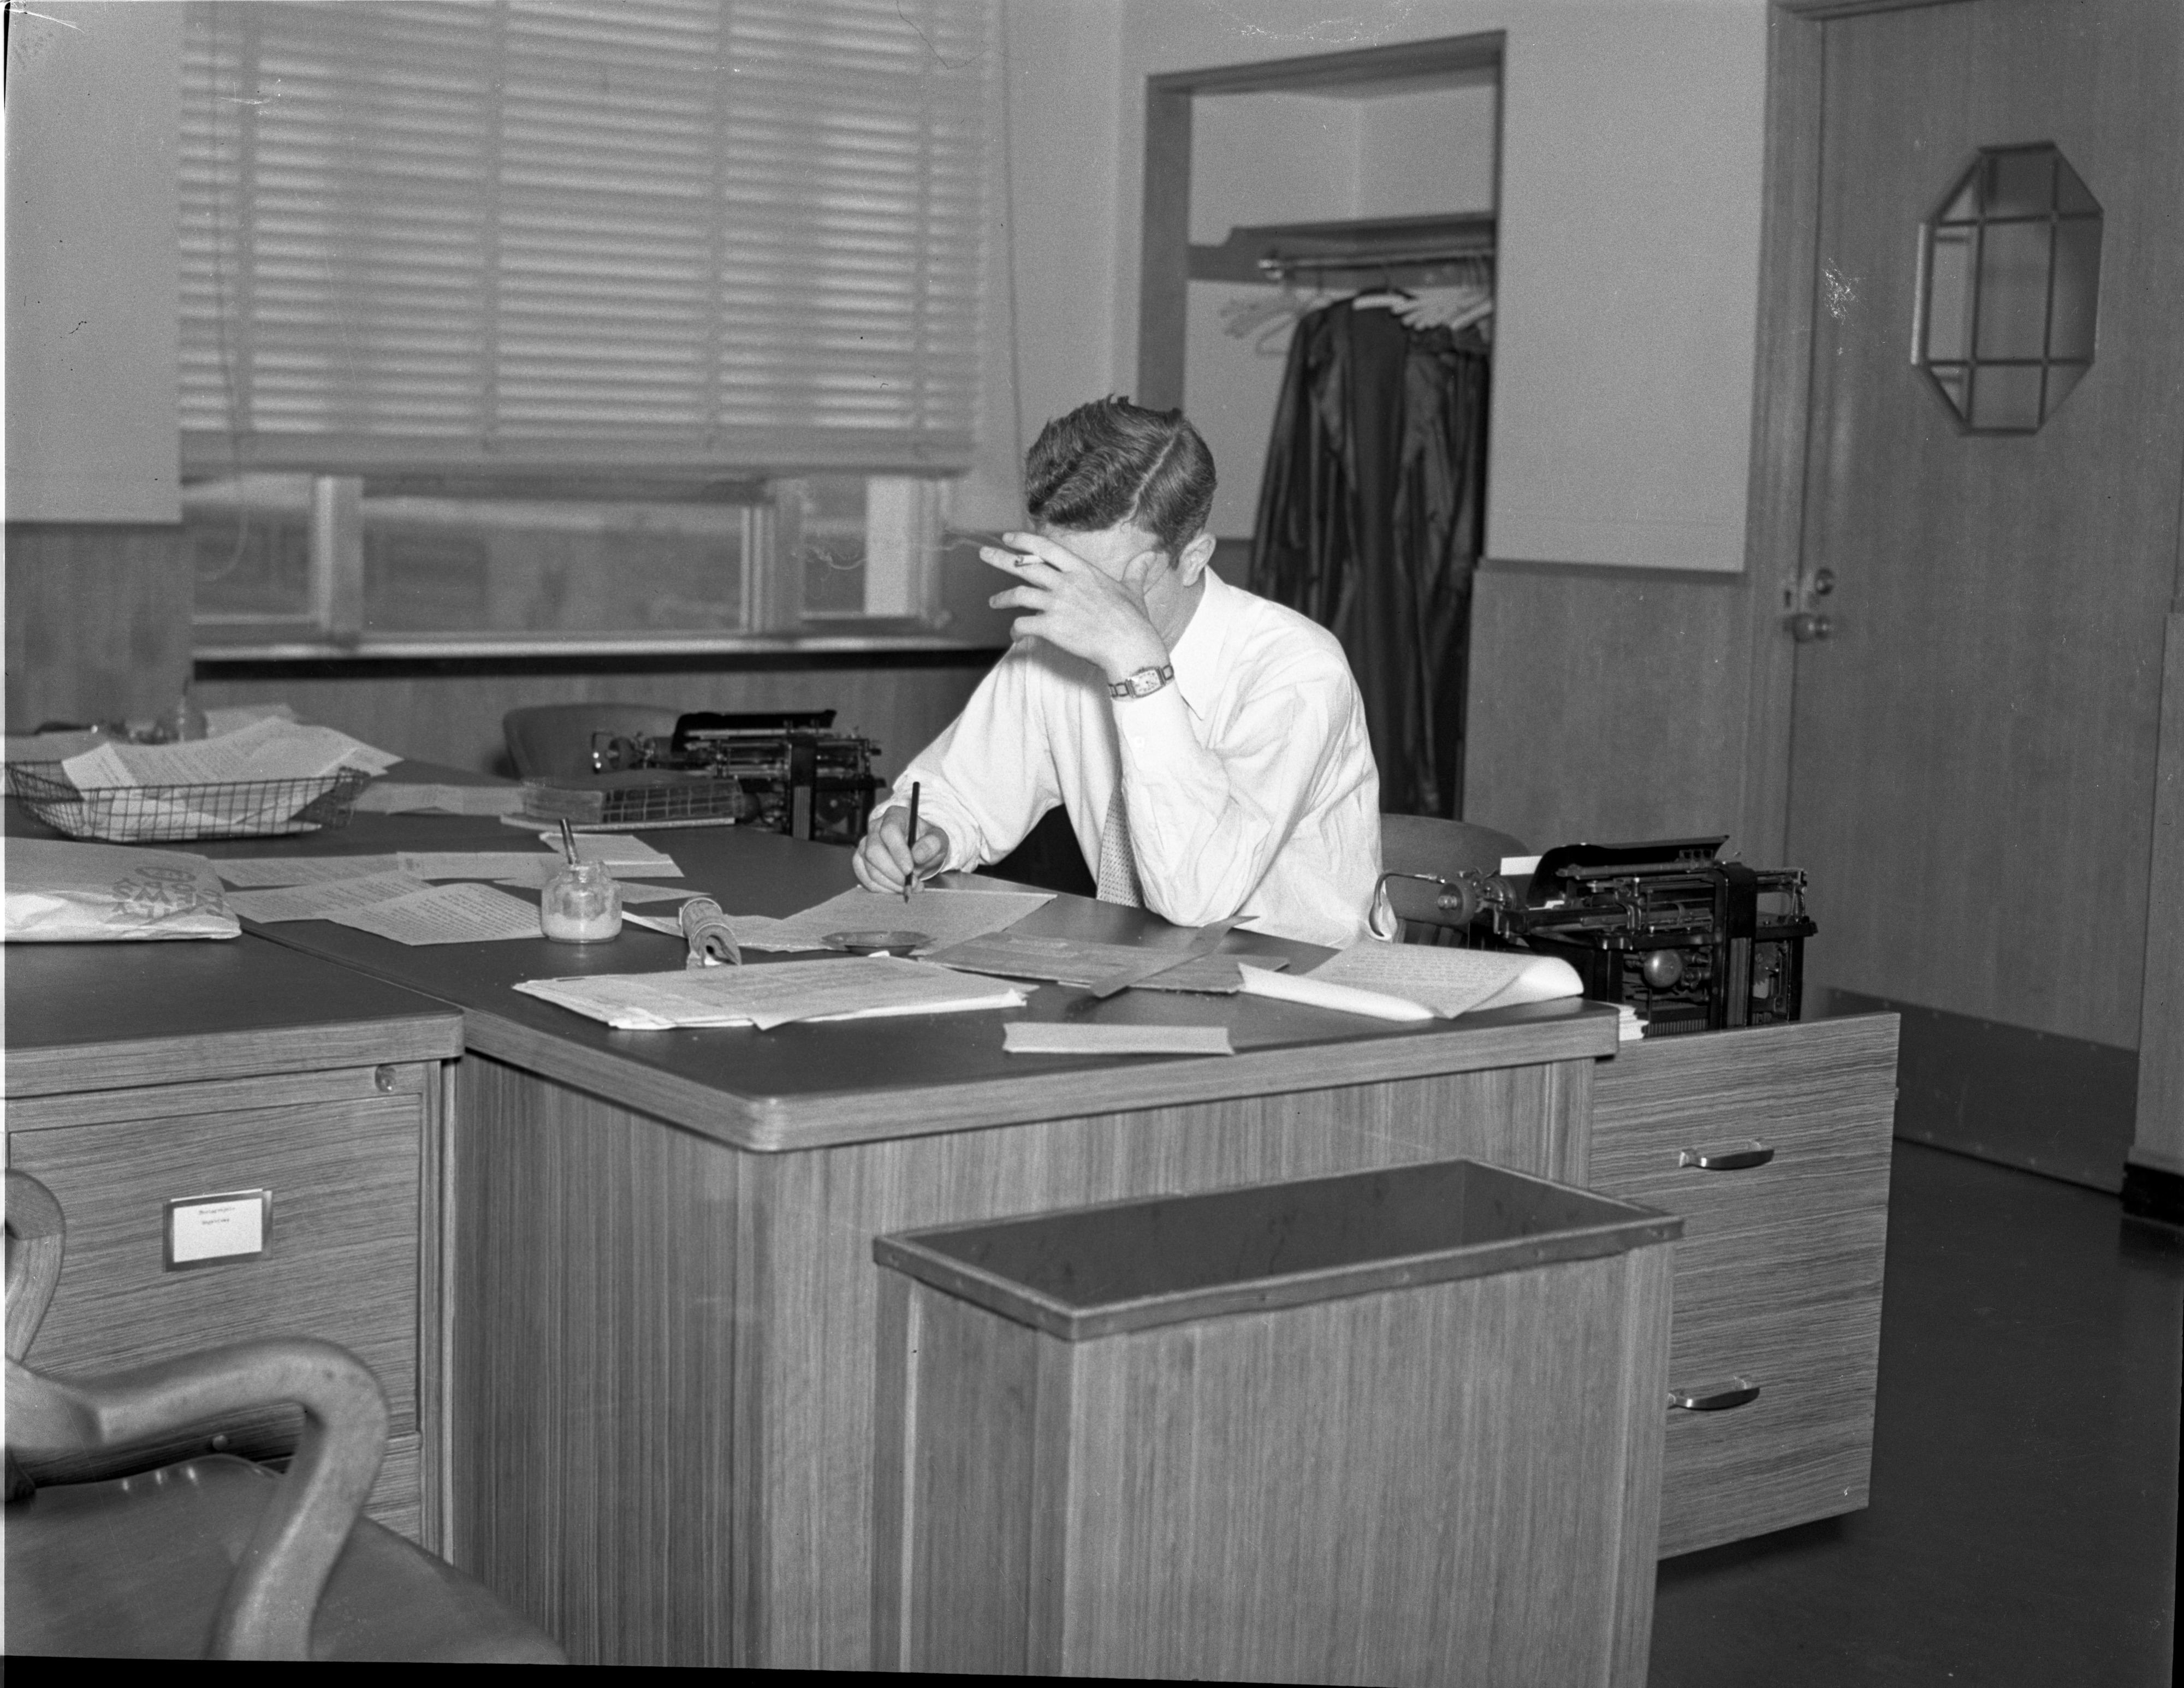 Working at the Ann Arbor News, 1937 image